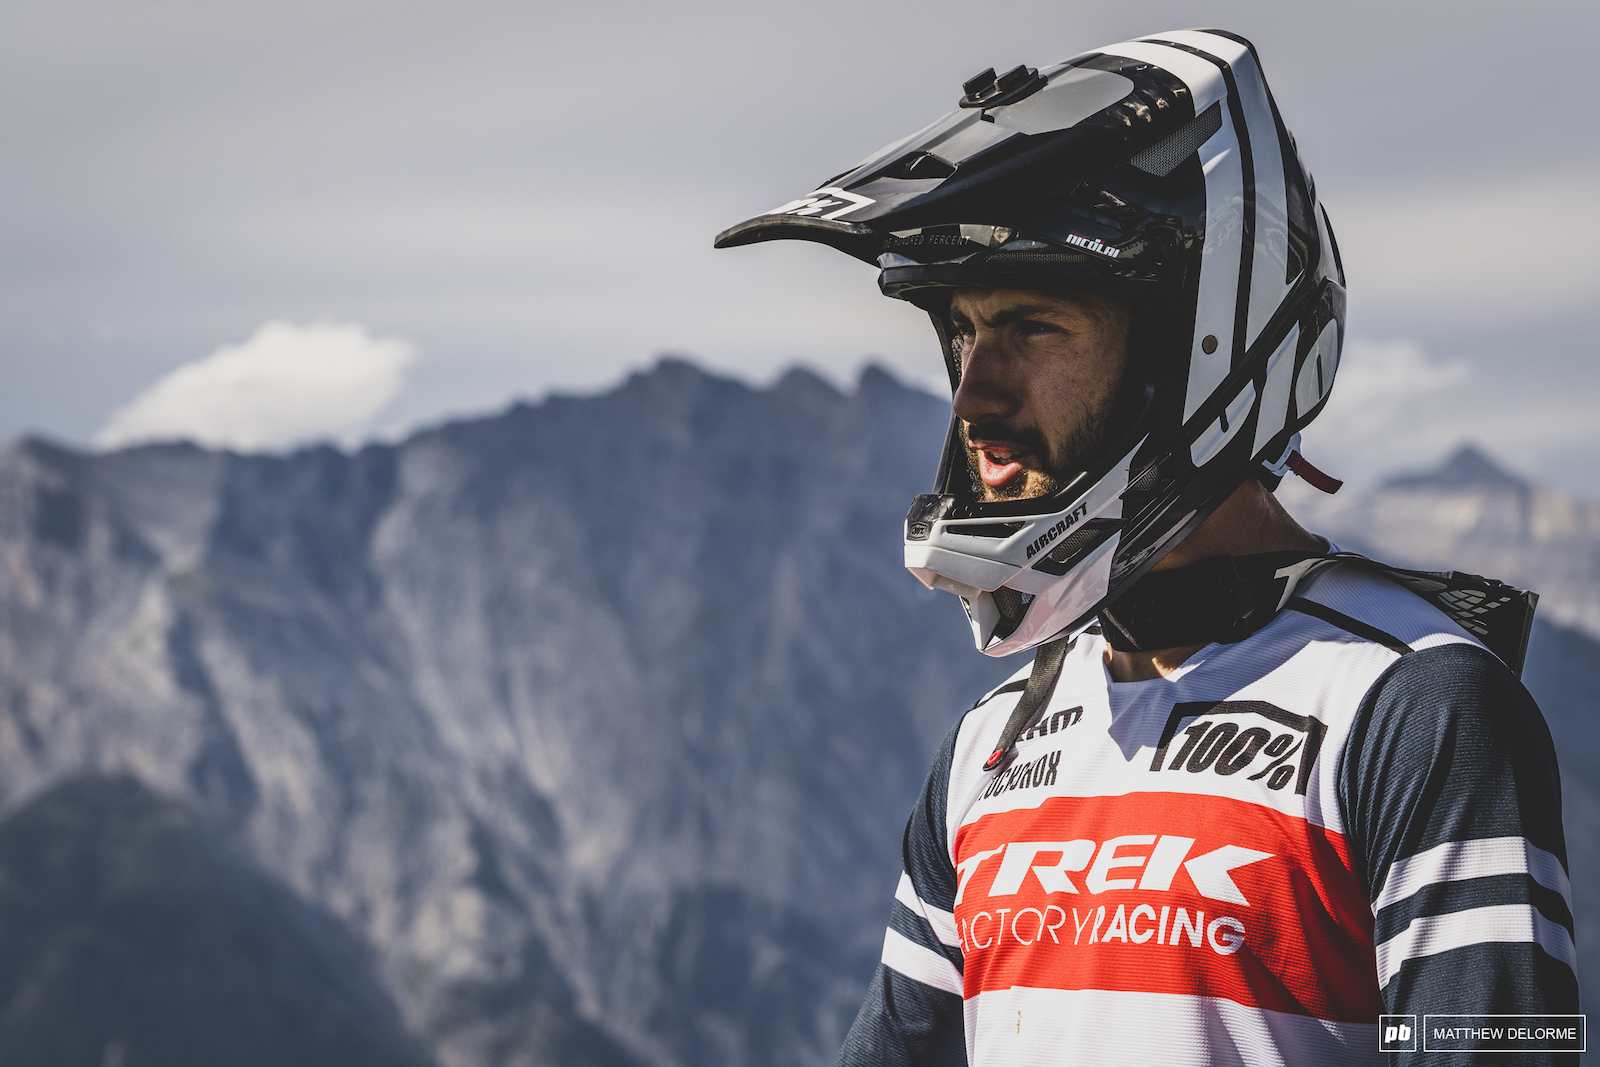 Florian Nicolai has made the move to Trek will the move make Flo fly faster